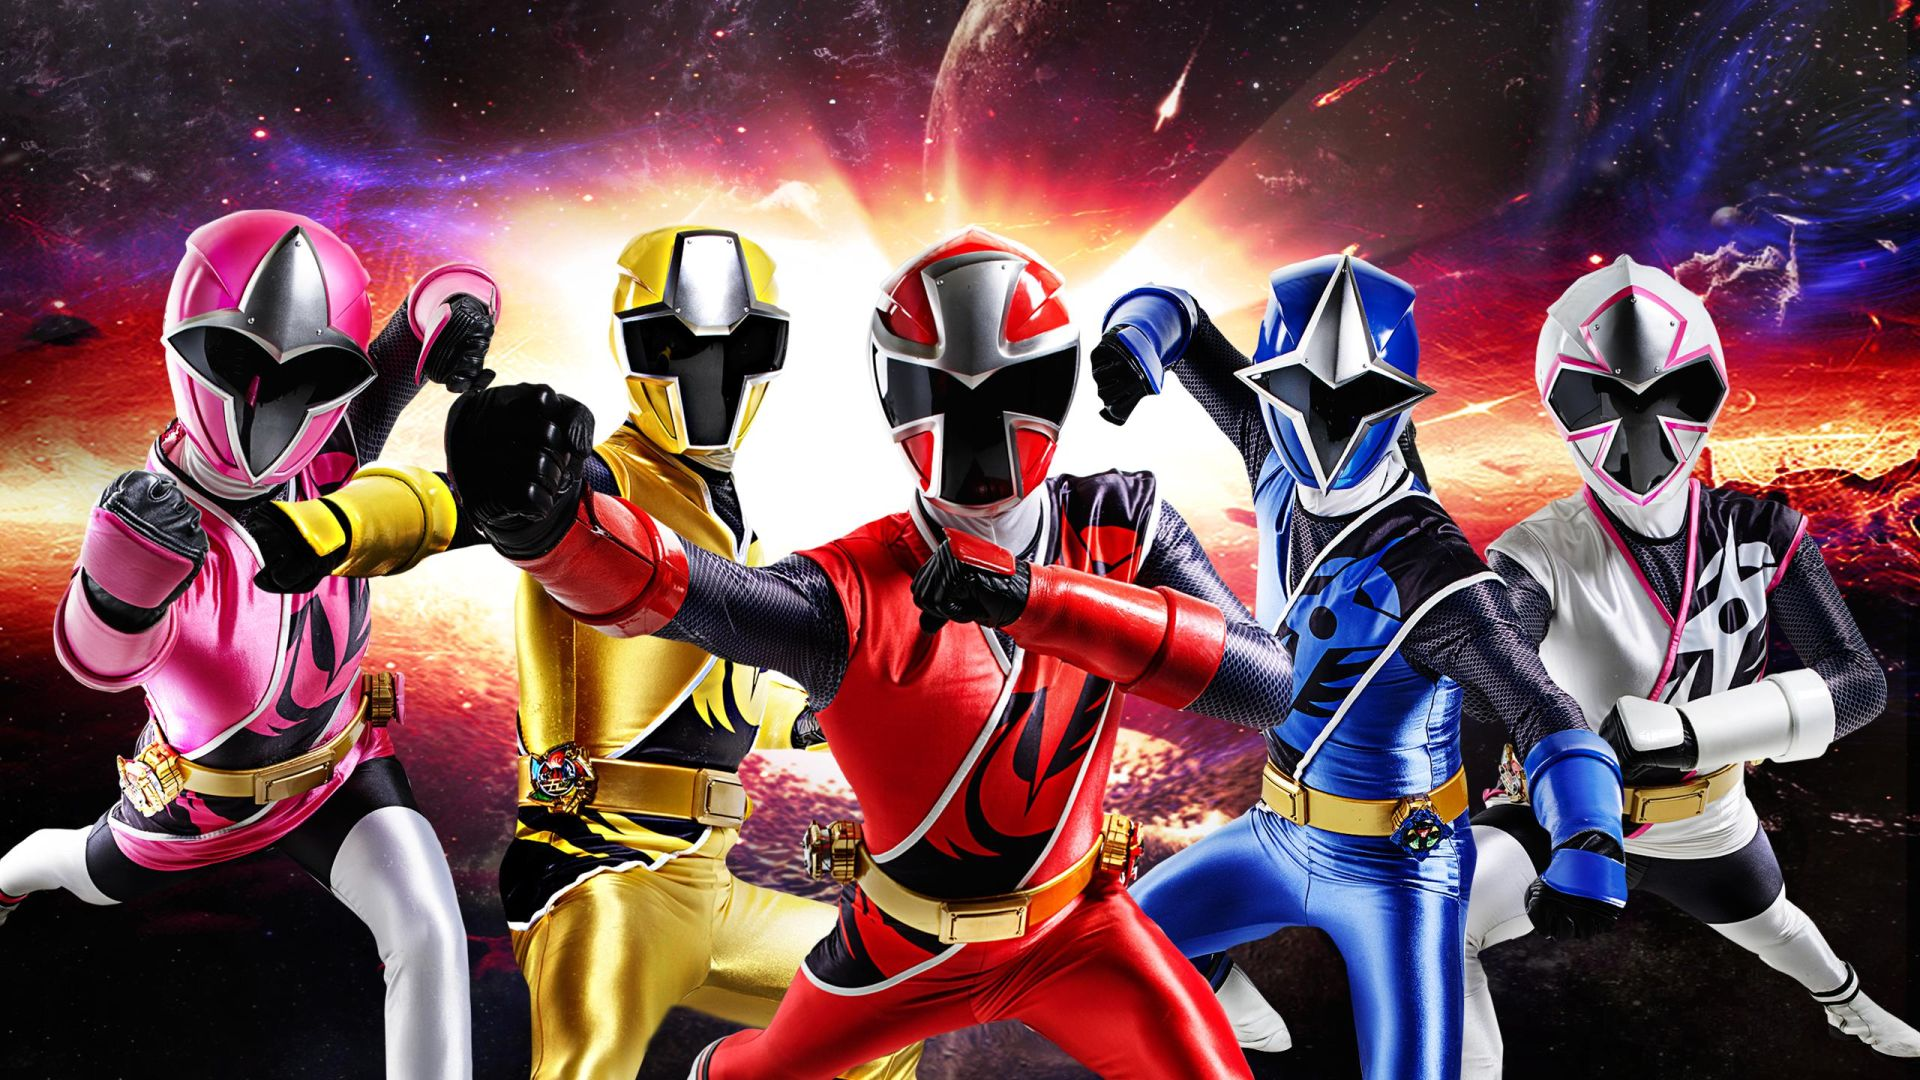 Mark Your Calendars For August 28 Because That Is Now Officially National Power Rangers Day This A New Campaign From Hasbro To Help Celebrate The 25th